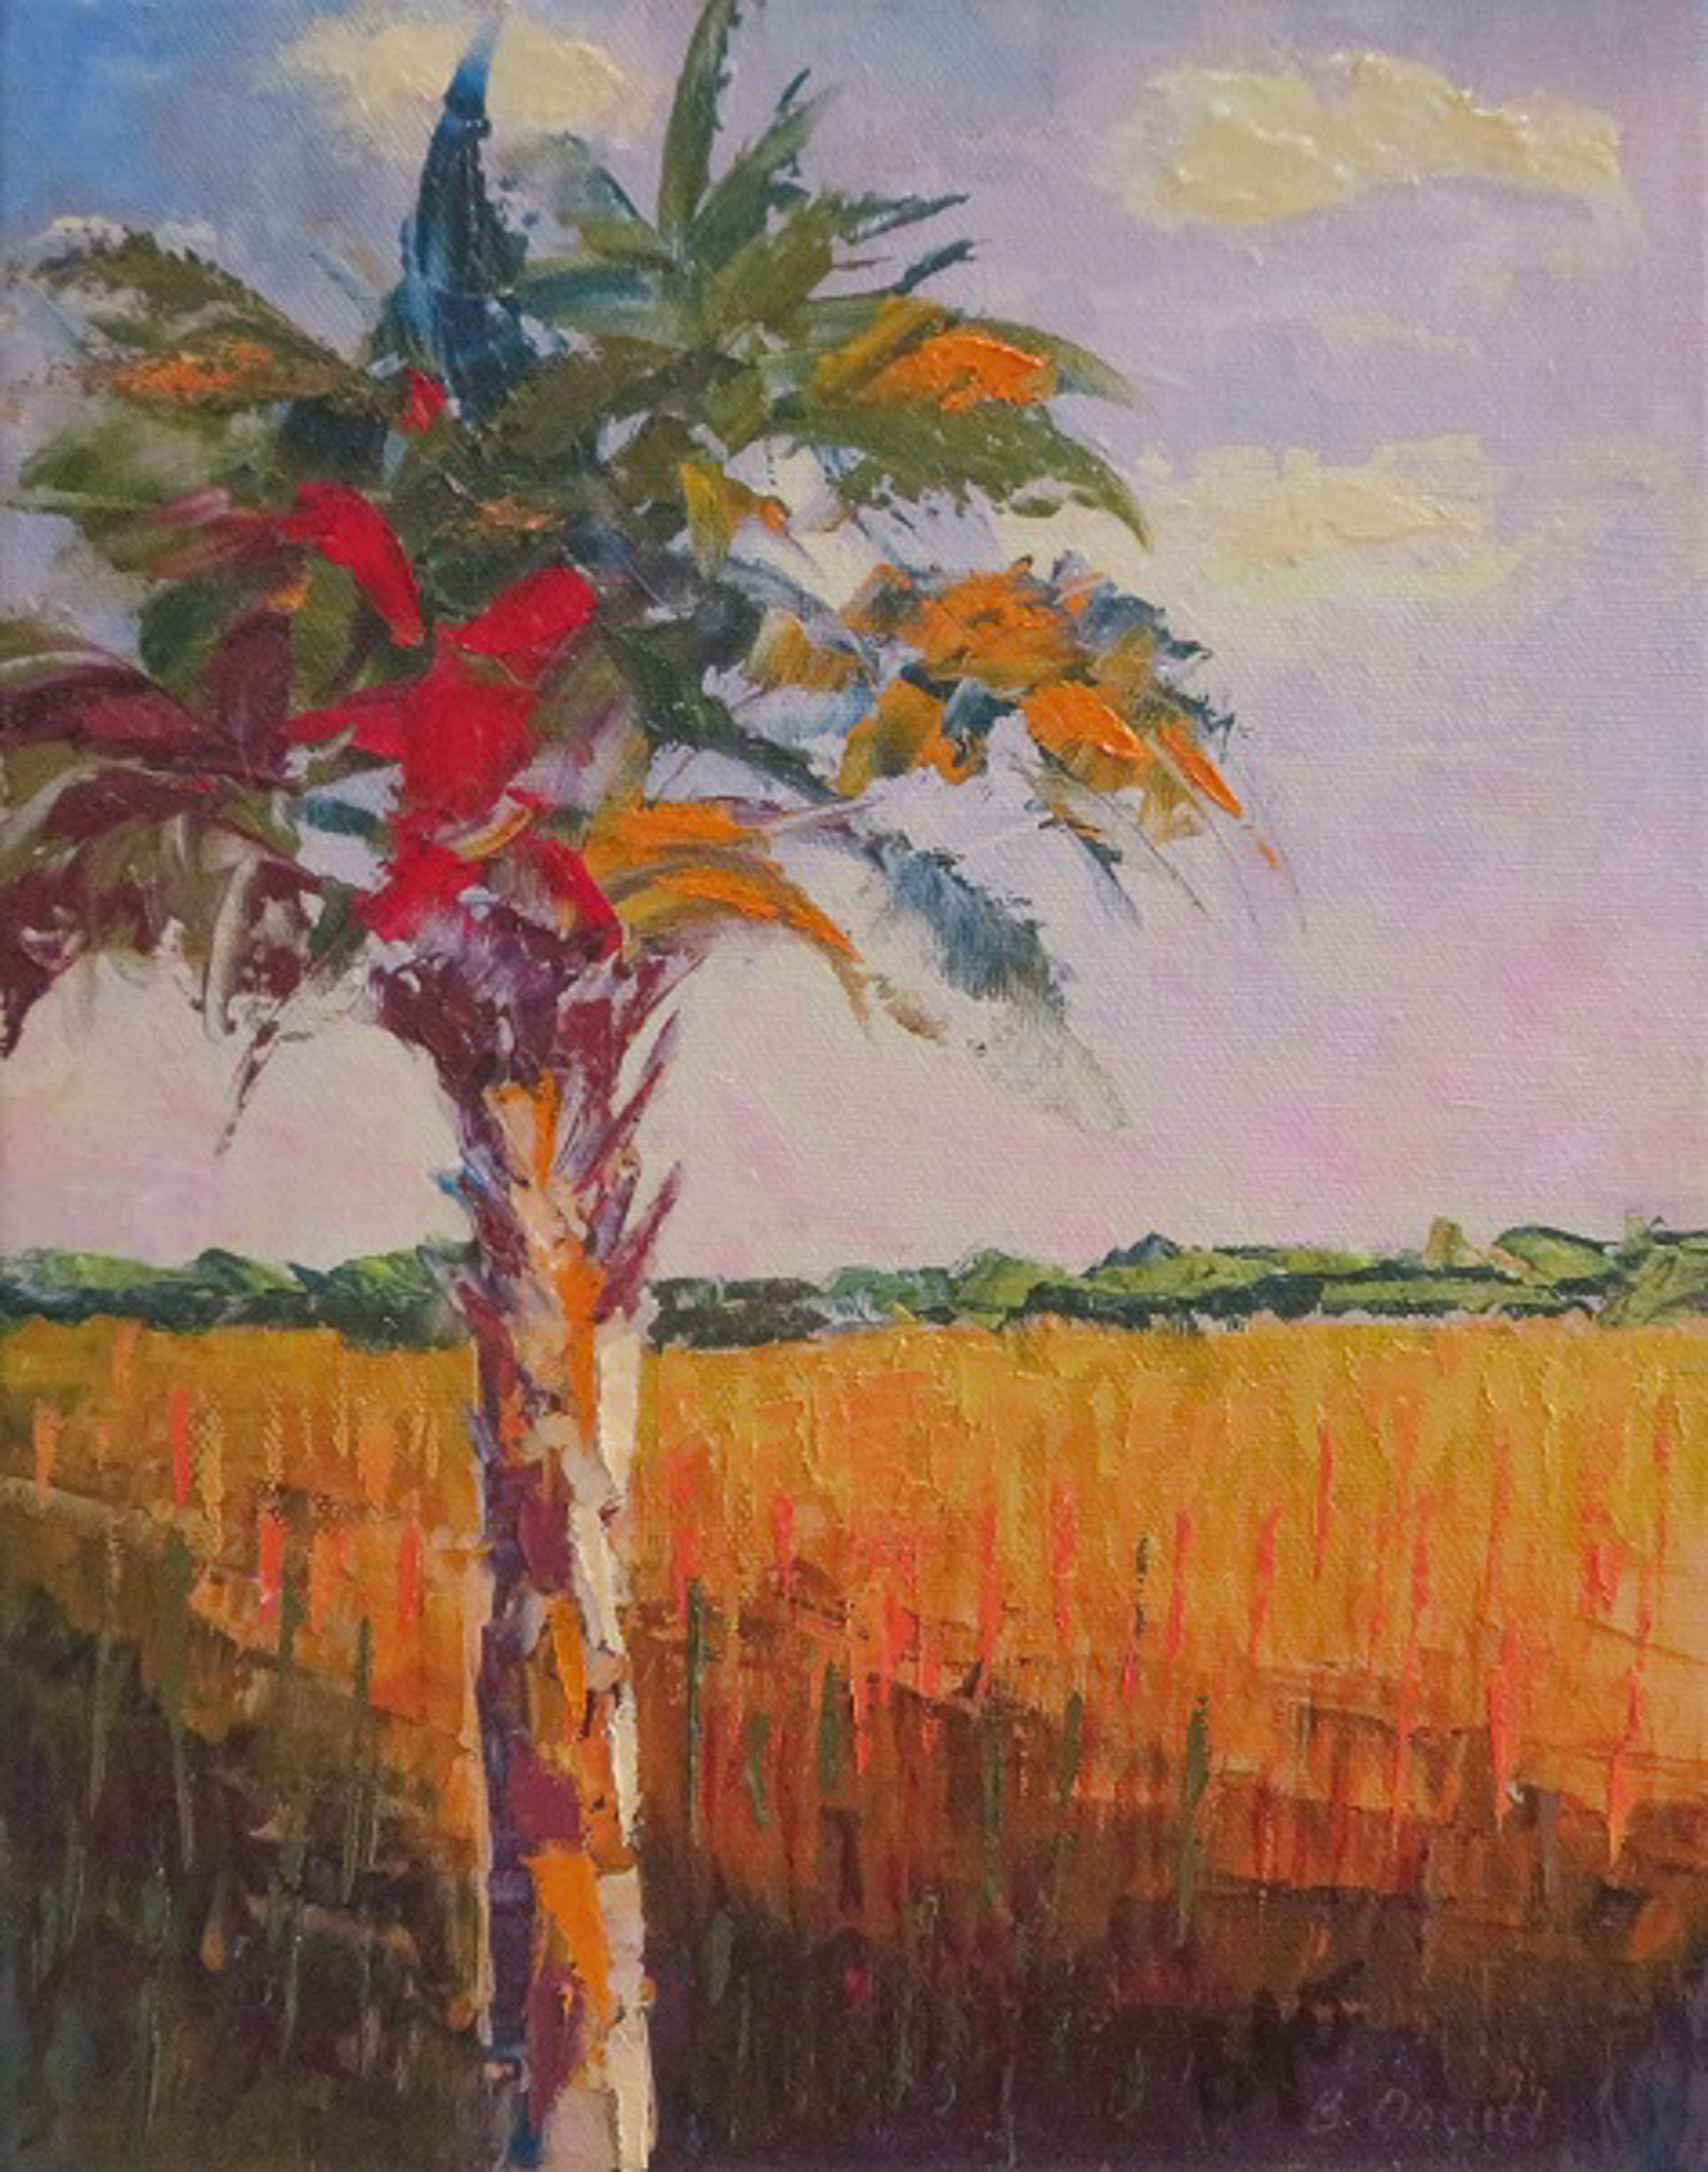 Sabel Palmetto by Brenda Orcutt, Giclee--Prints